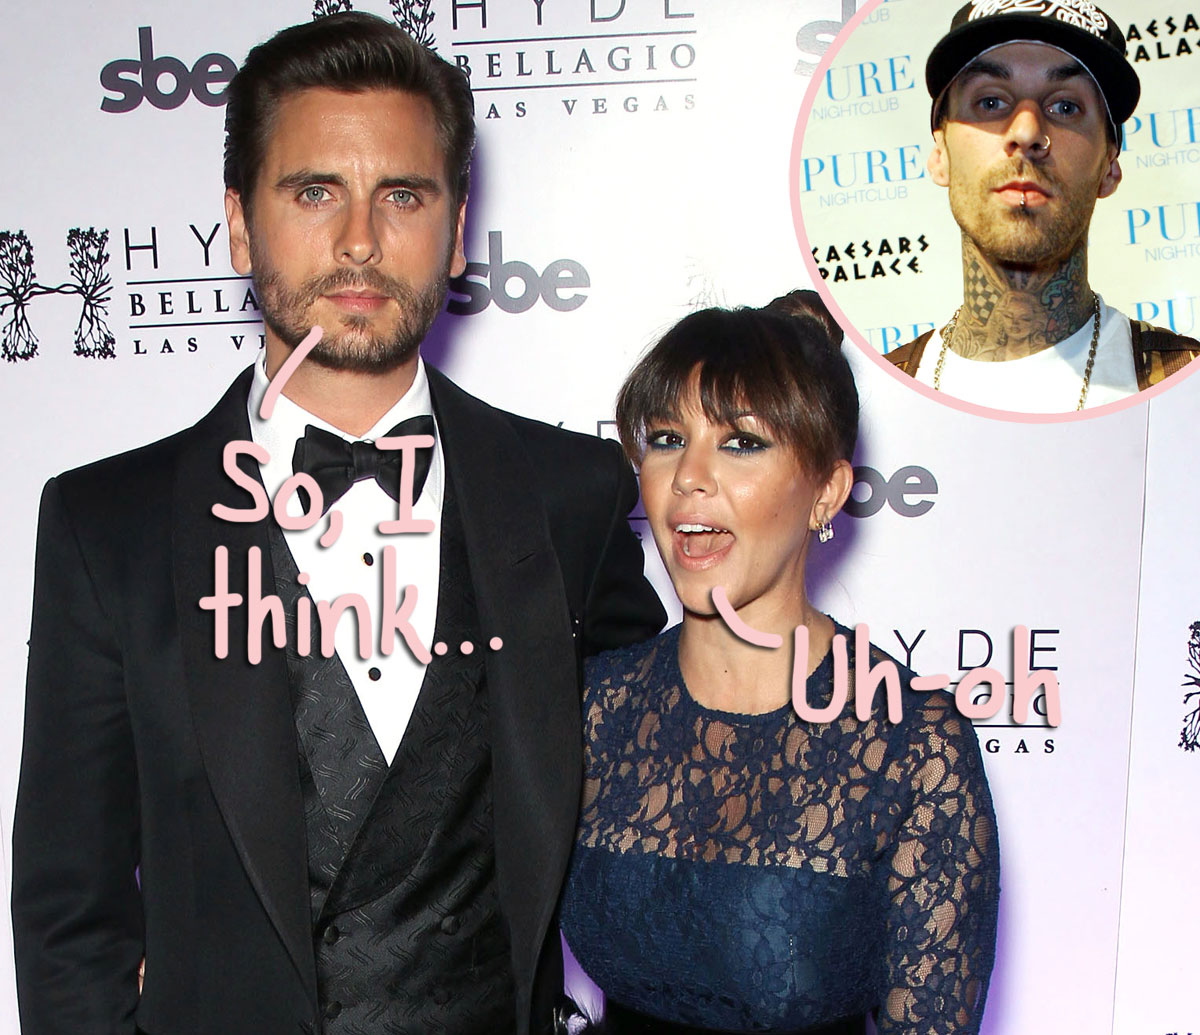 Here's How Scott Disick REALLY Feels About Kourtney Kardashian Dating Travis Barker...